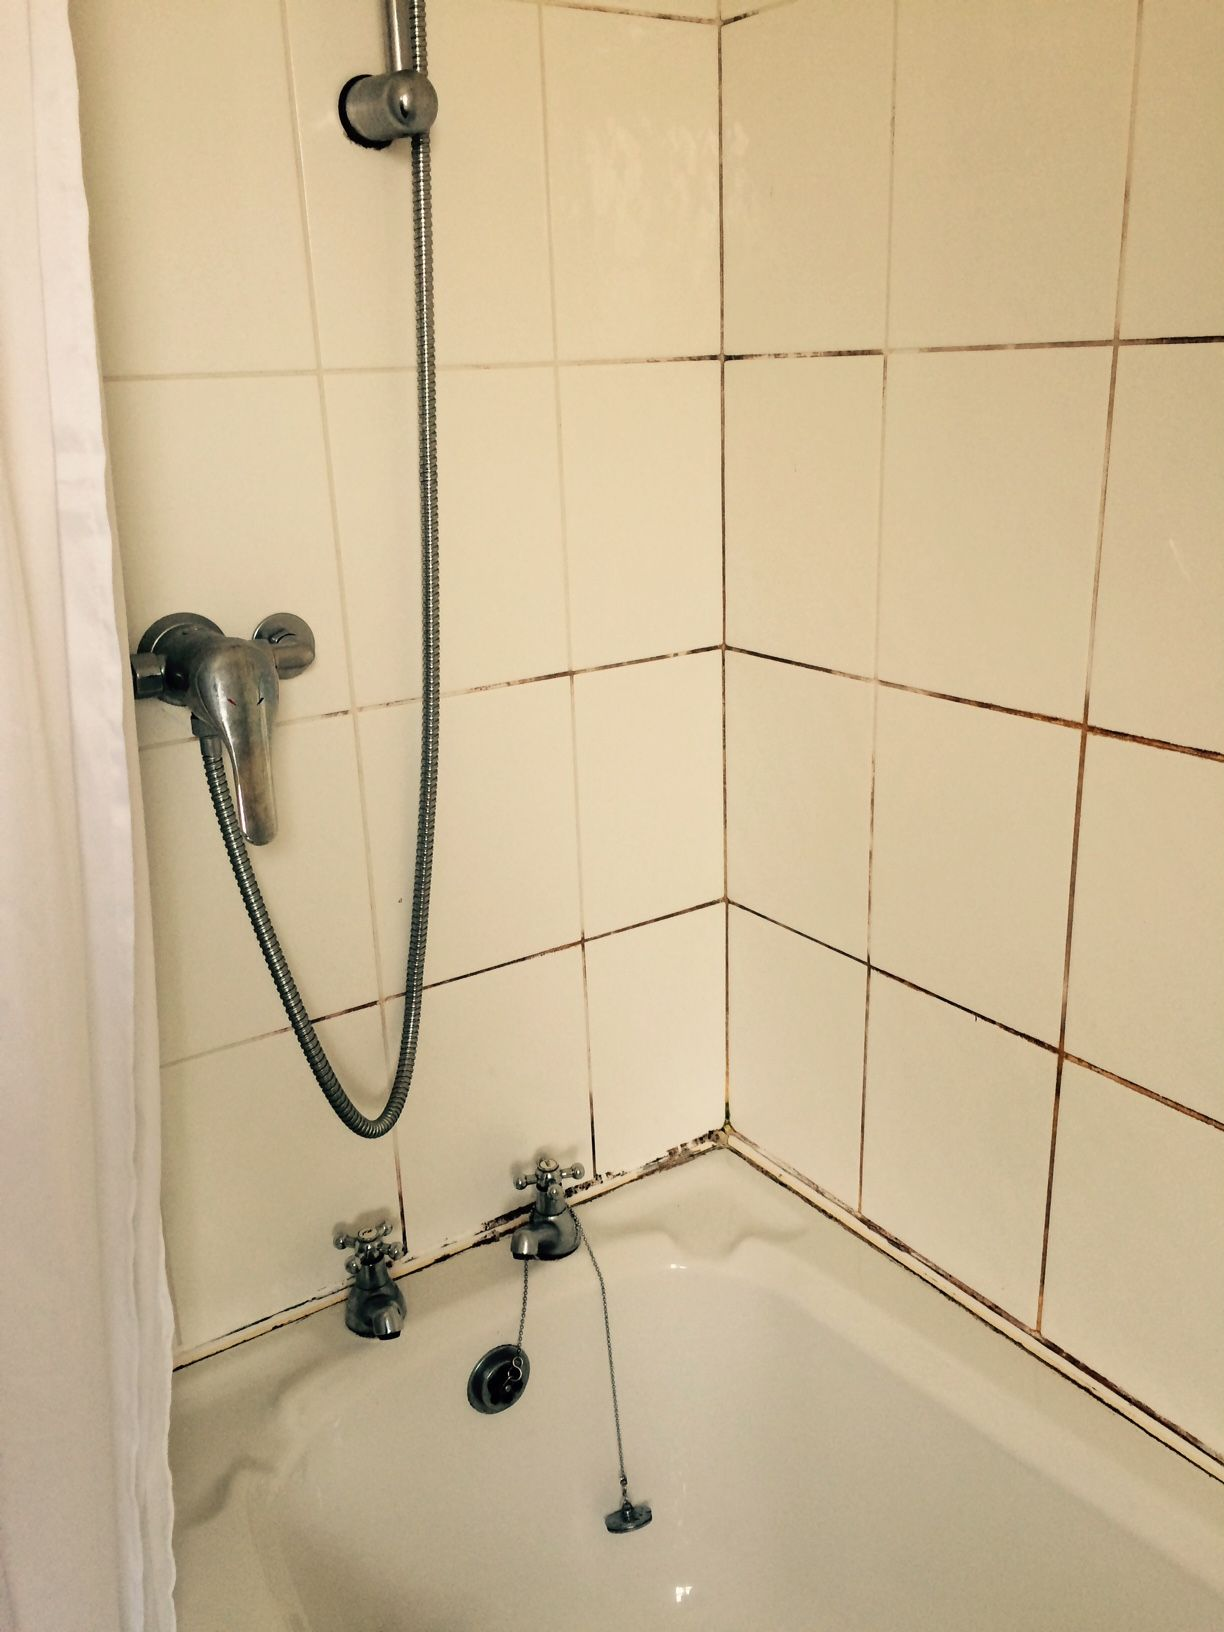 Cleaning And Sealing A Mouldy Ceramic Tiled Shower In Galgate Tile Doctor Lancashire Shower Tile Cleaner Bathroom Shower Tile Clean Bathroom Shower